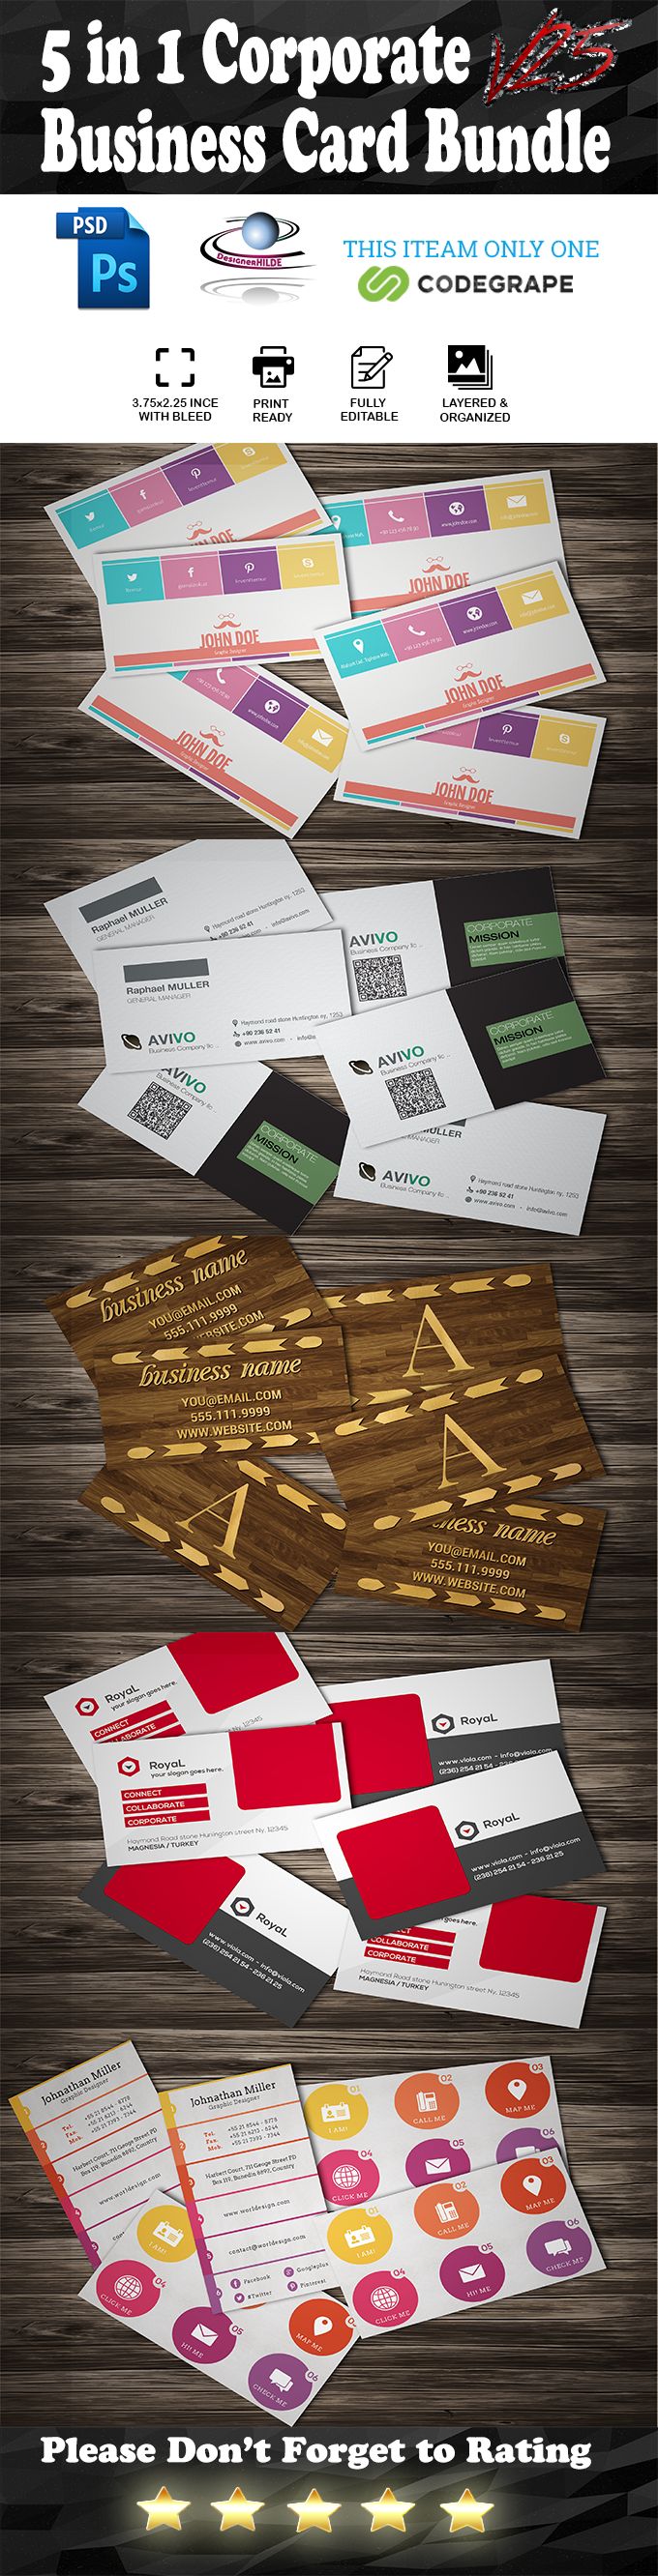 5 in 1 Corporate Business Card Bundle V. 25